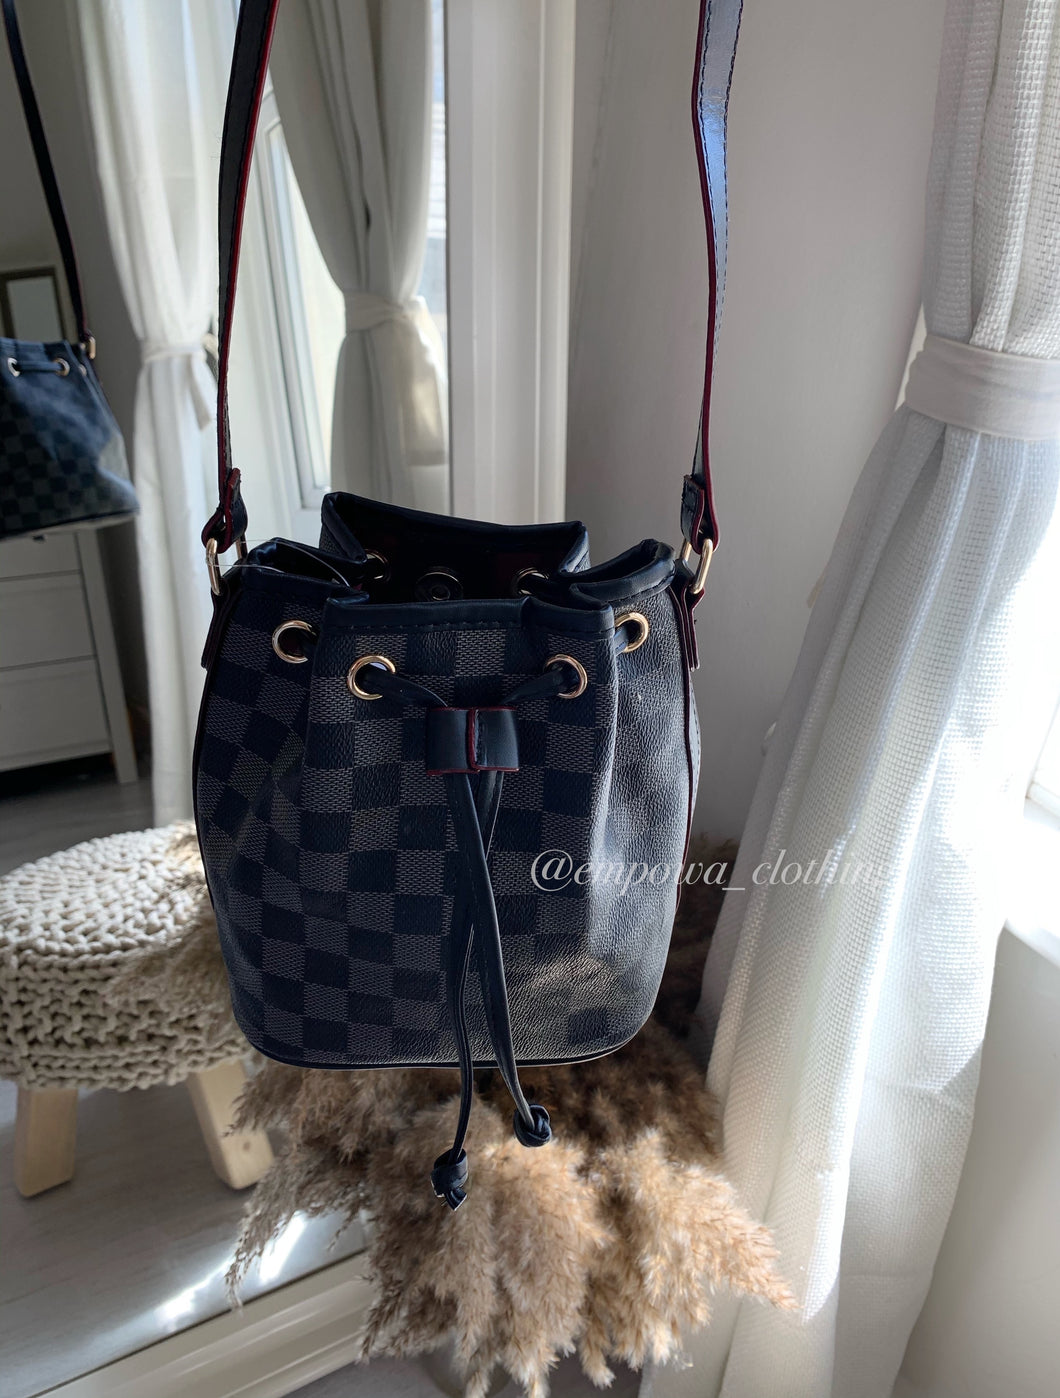 PARIS MINI BUCKET BAG